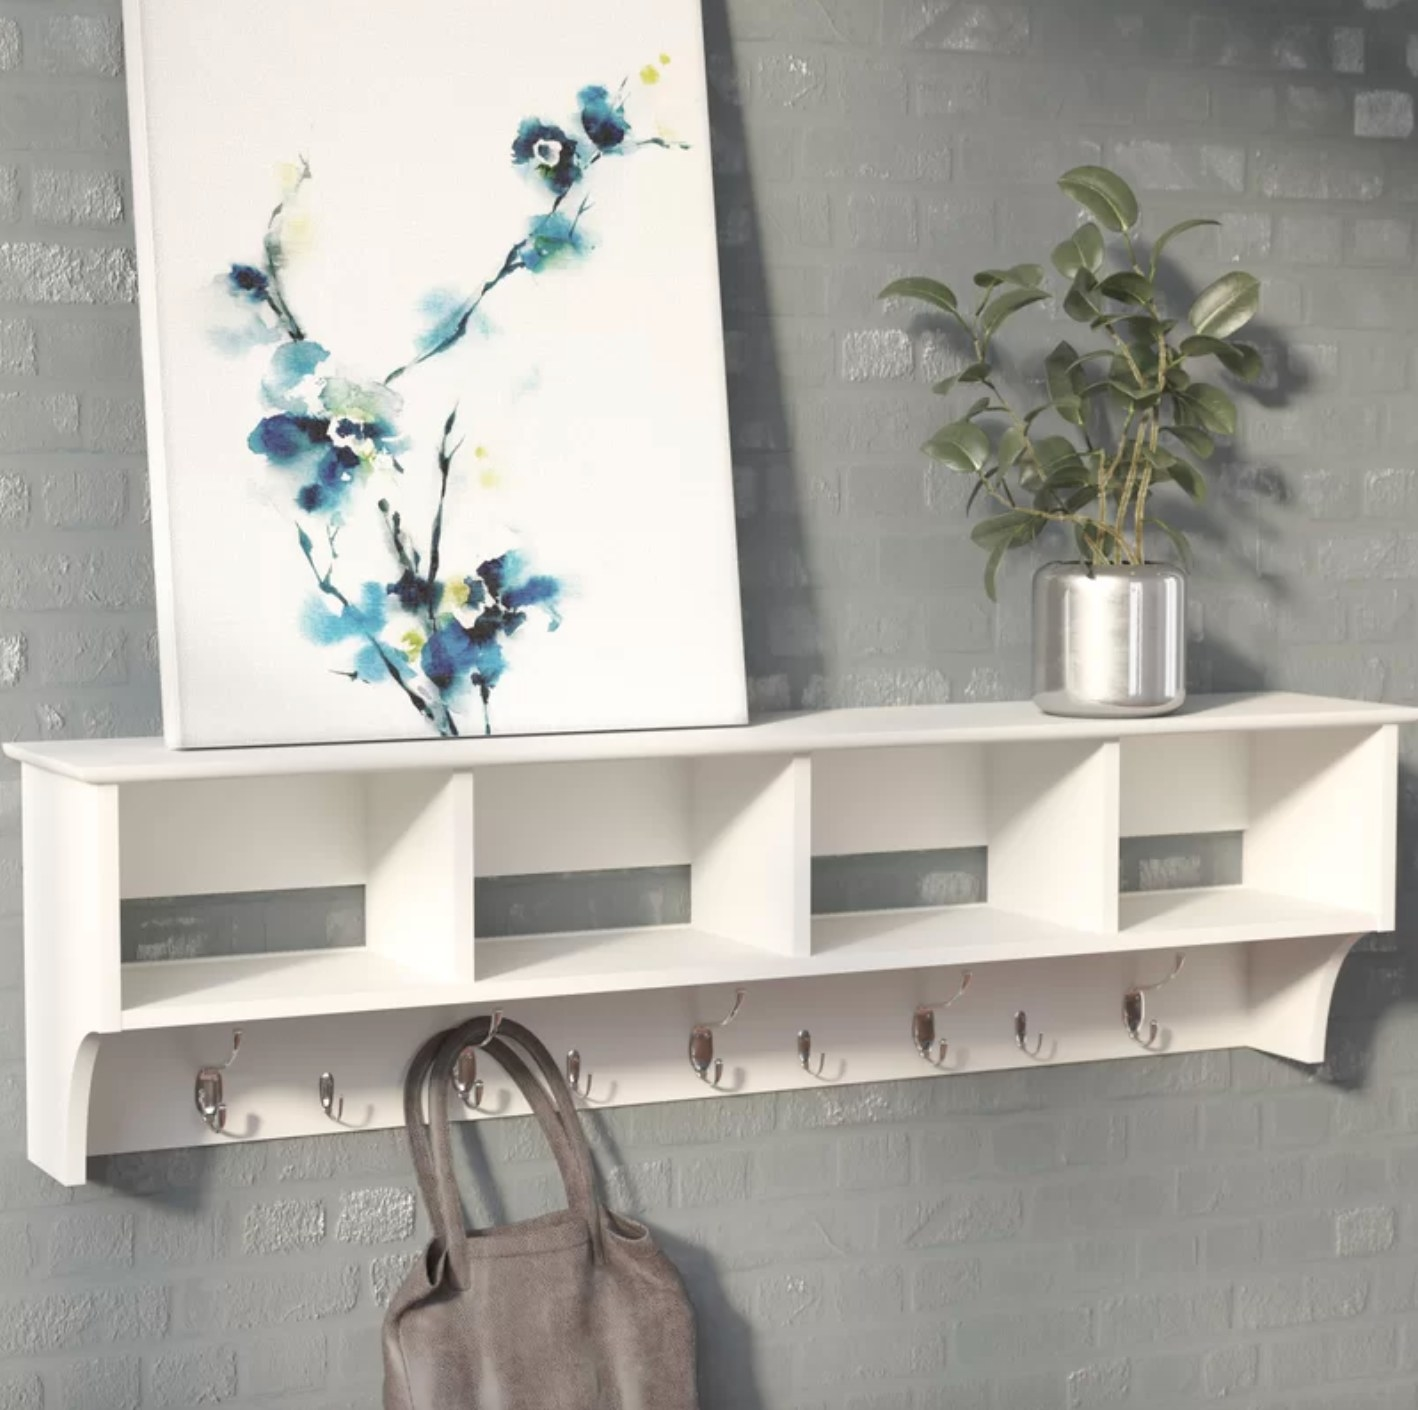 The mounted coat rack in white